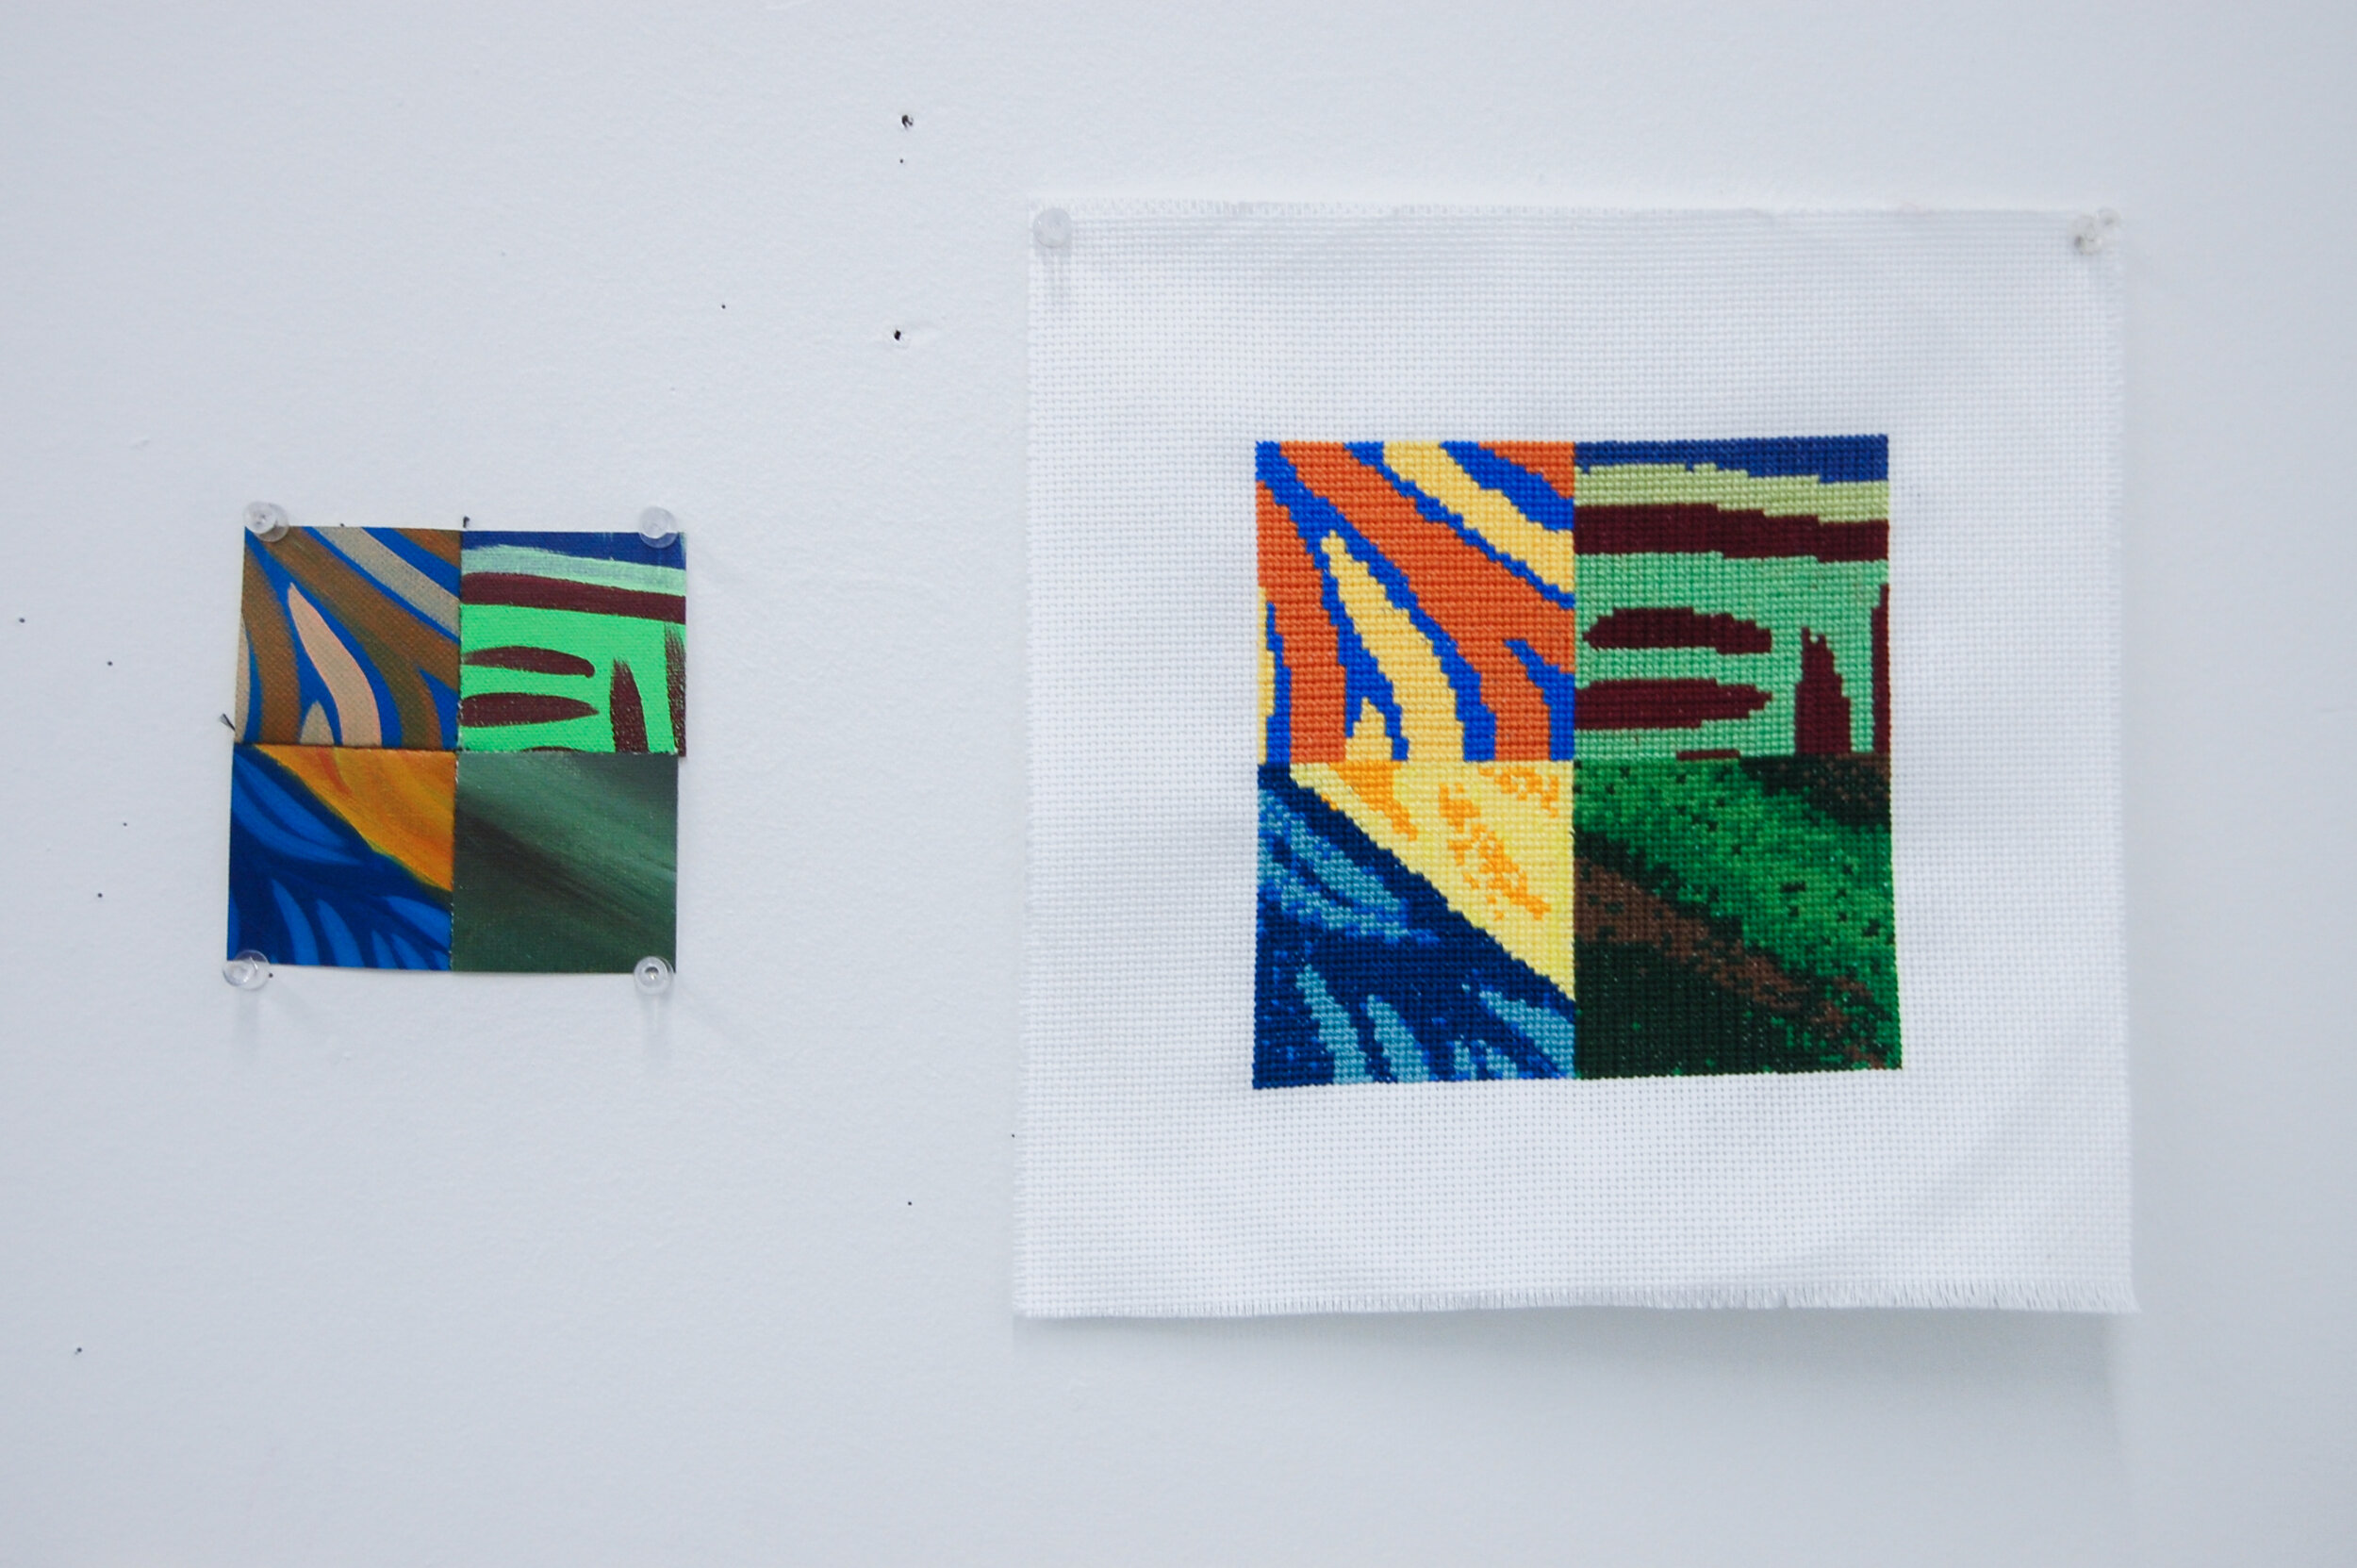 Translation #2 - Paint By Numbers,  2019, acrylic, canvas, embroidery floss, 4 x 4 inches and  Translation #2 - Cross-Stitch , 2019, embroidery floss, Aida cloth, 6 x 6 inches